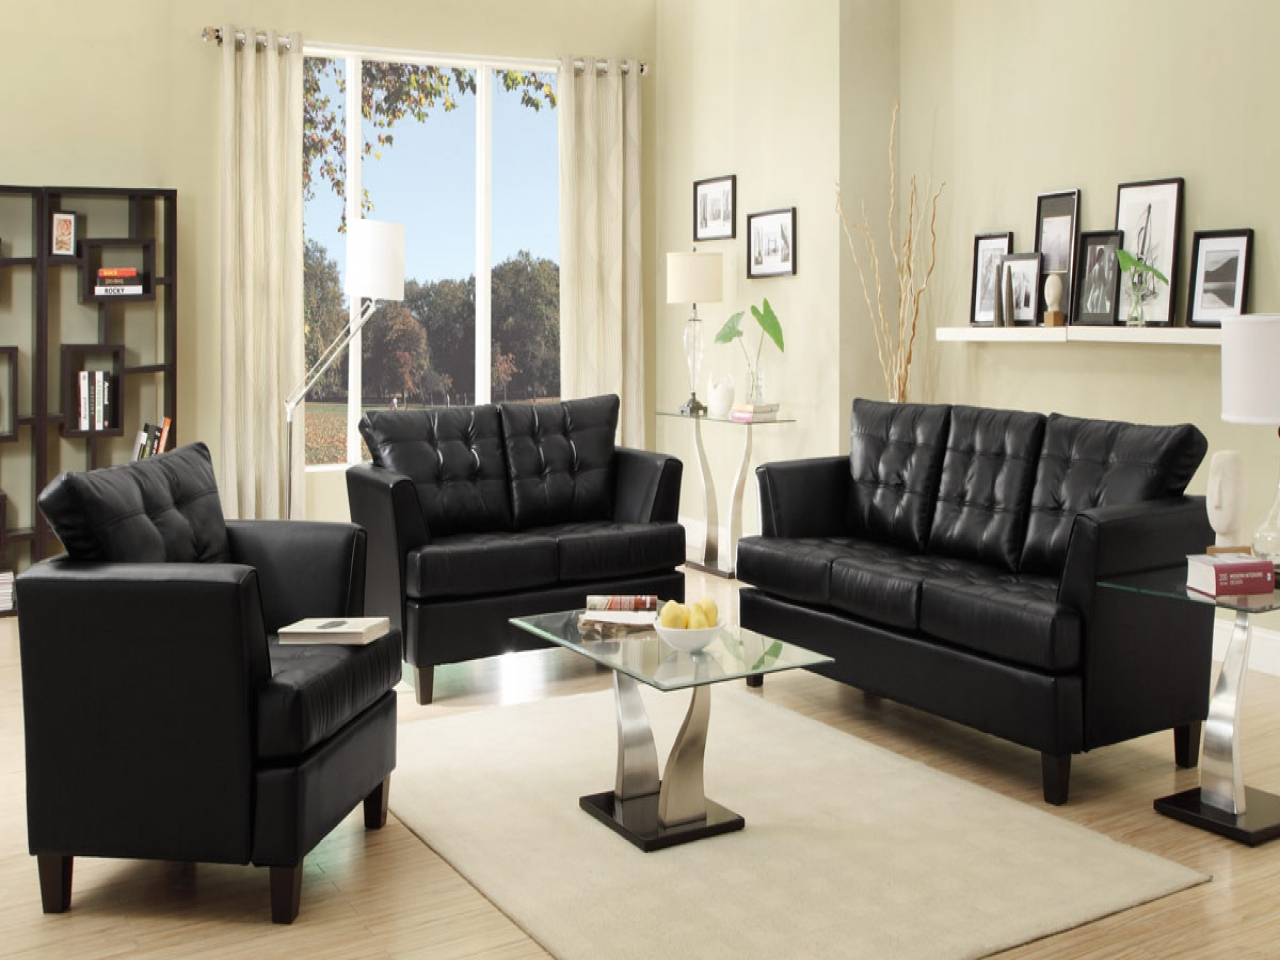 Black leather sofas for small spaces a sign of elegance and beauty 23 black leather sofas for - Leather sectional couches for small spaces collection ...